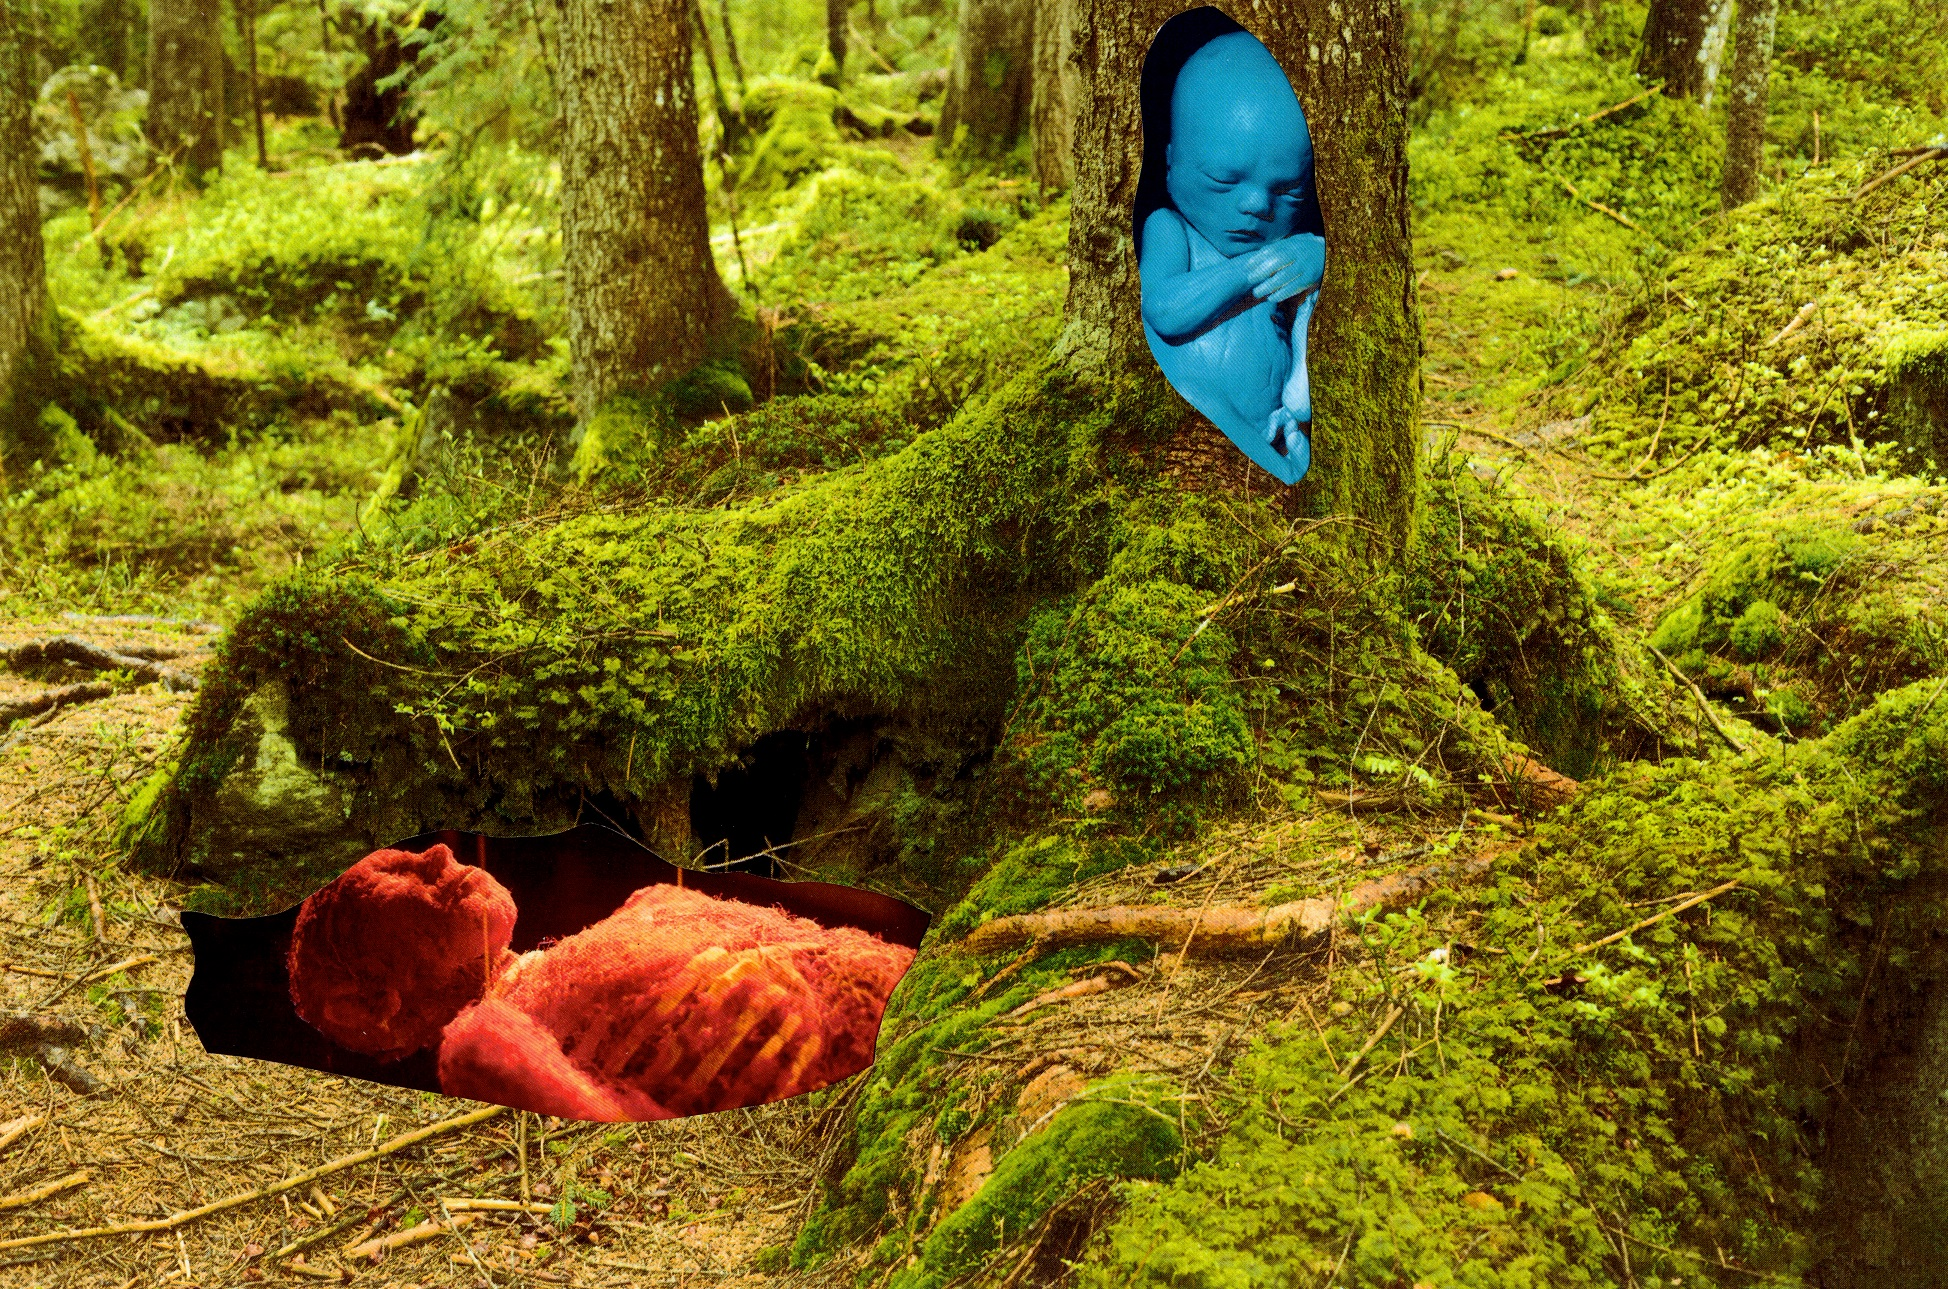 harit-srikhao-midnight-rainbows-young-old-forest